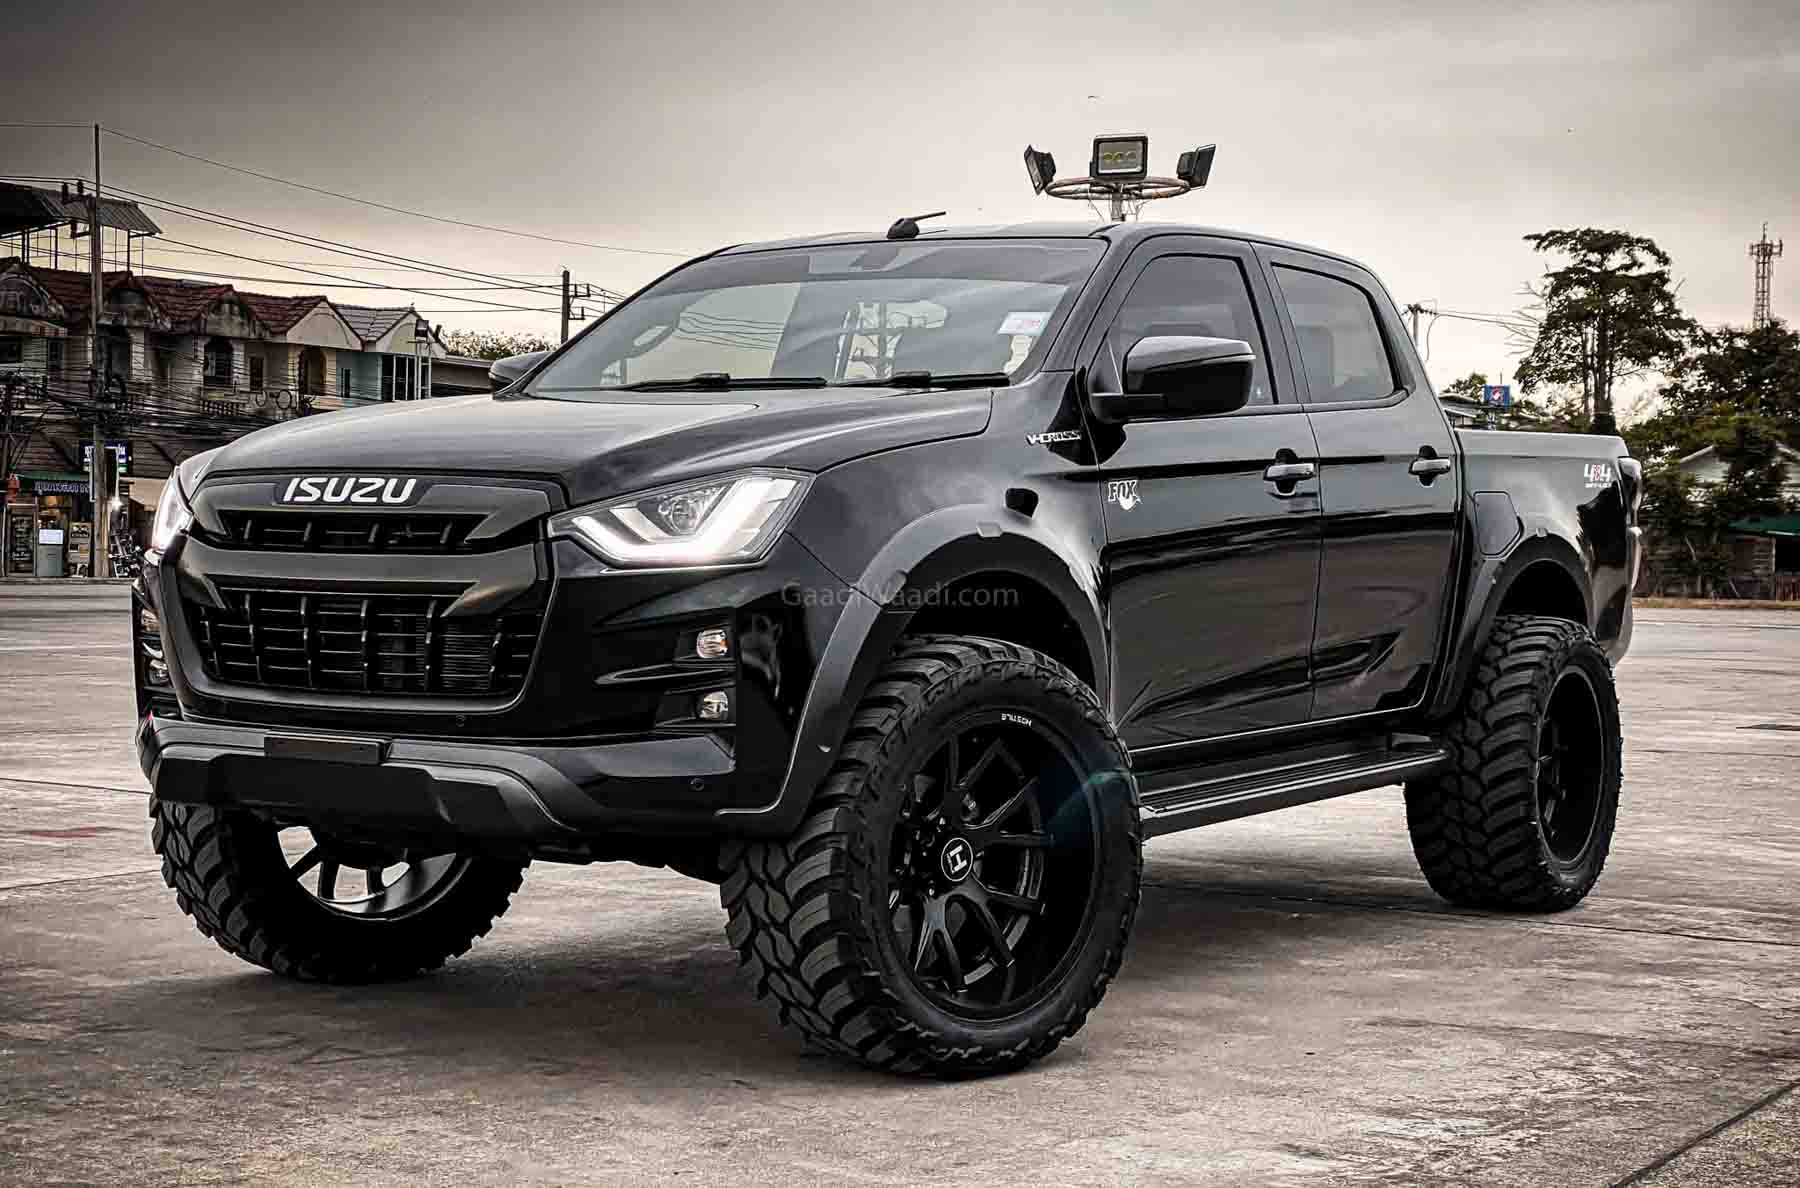 Enthusiasts Rejoice! At Least 5 New Capable 4x4s To Launch Soon